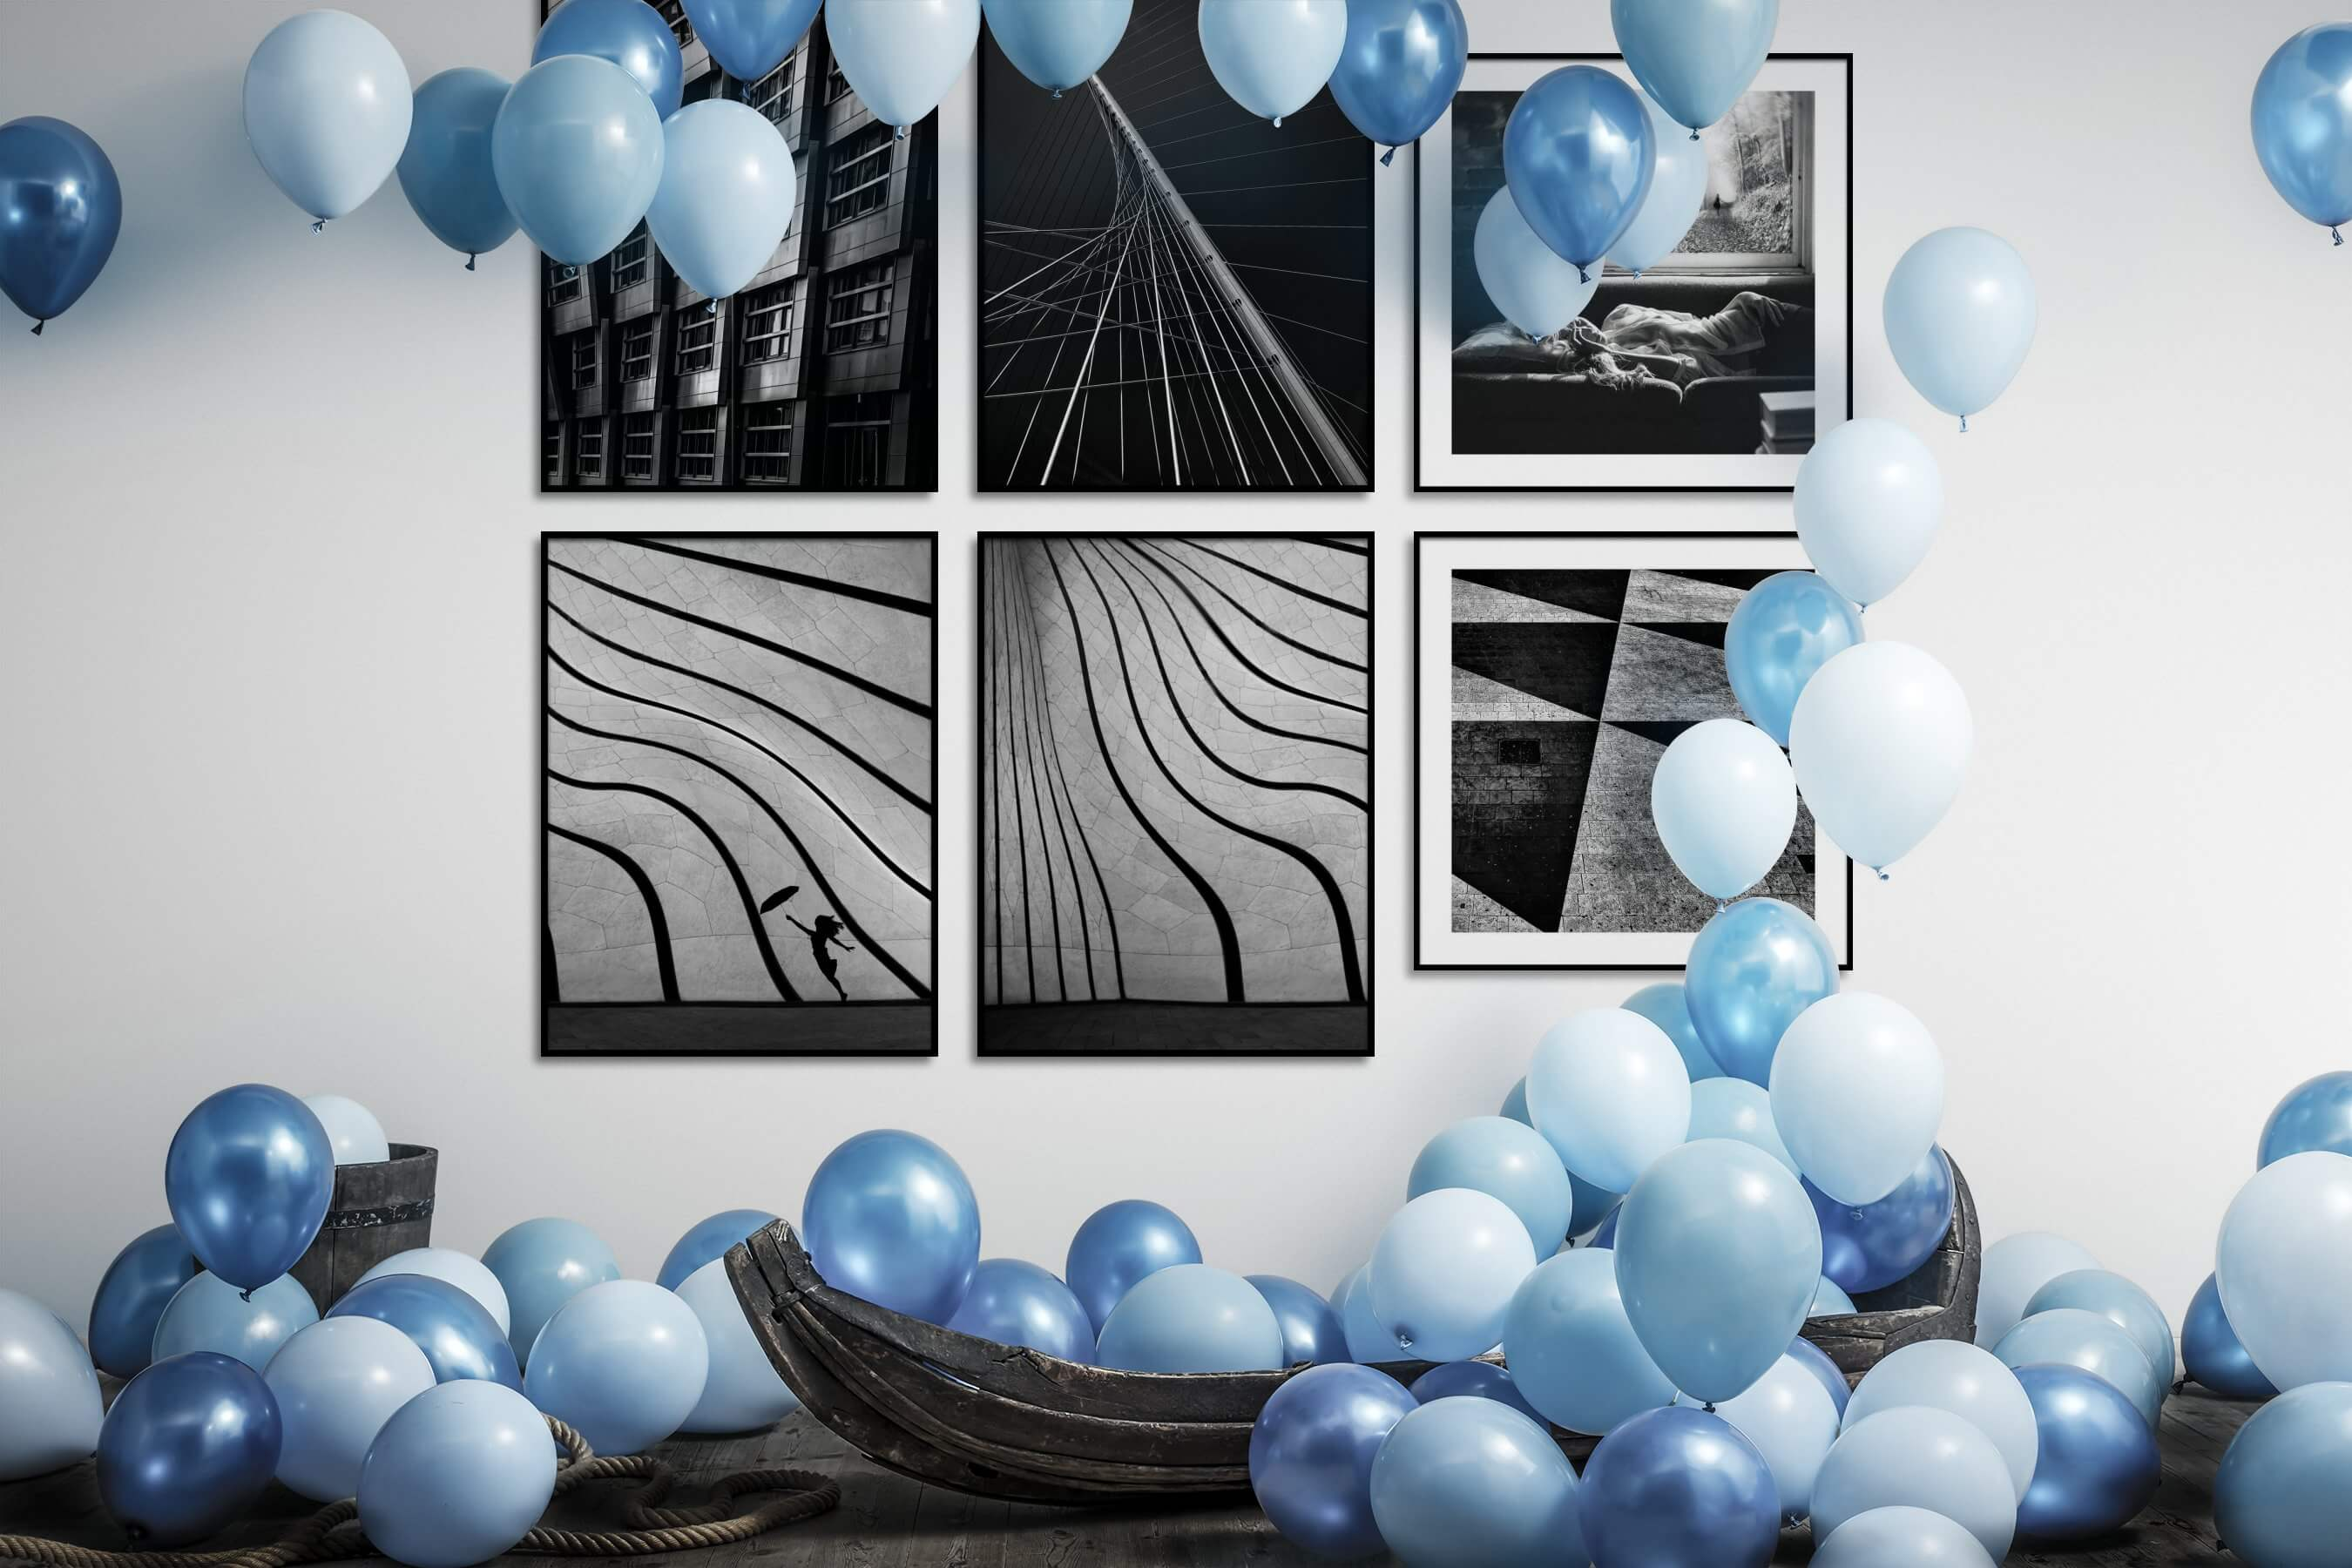 Gallery wall idea with six framed pictures arranged on a wall depicting Black & White, For the Maximalist, City Life, For the Moderate, and Artsy